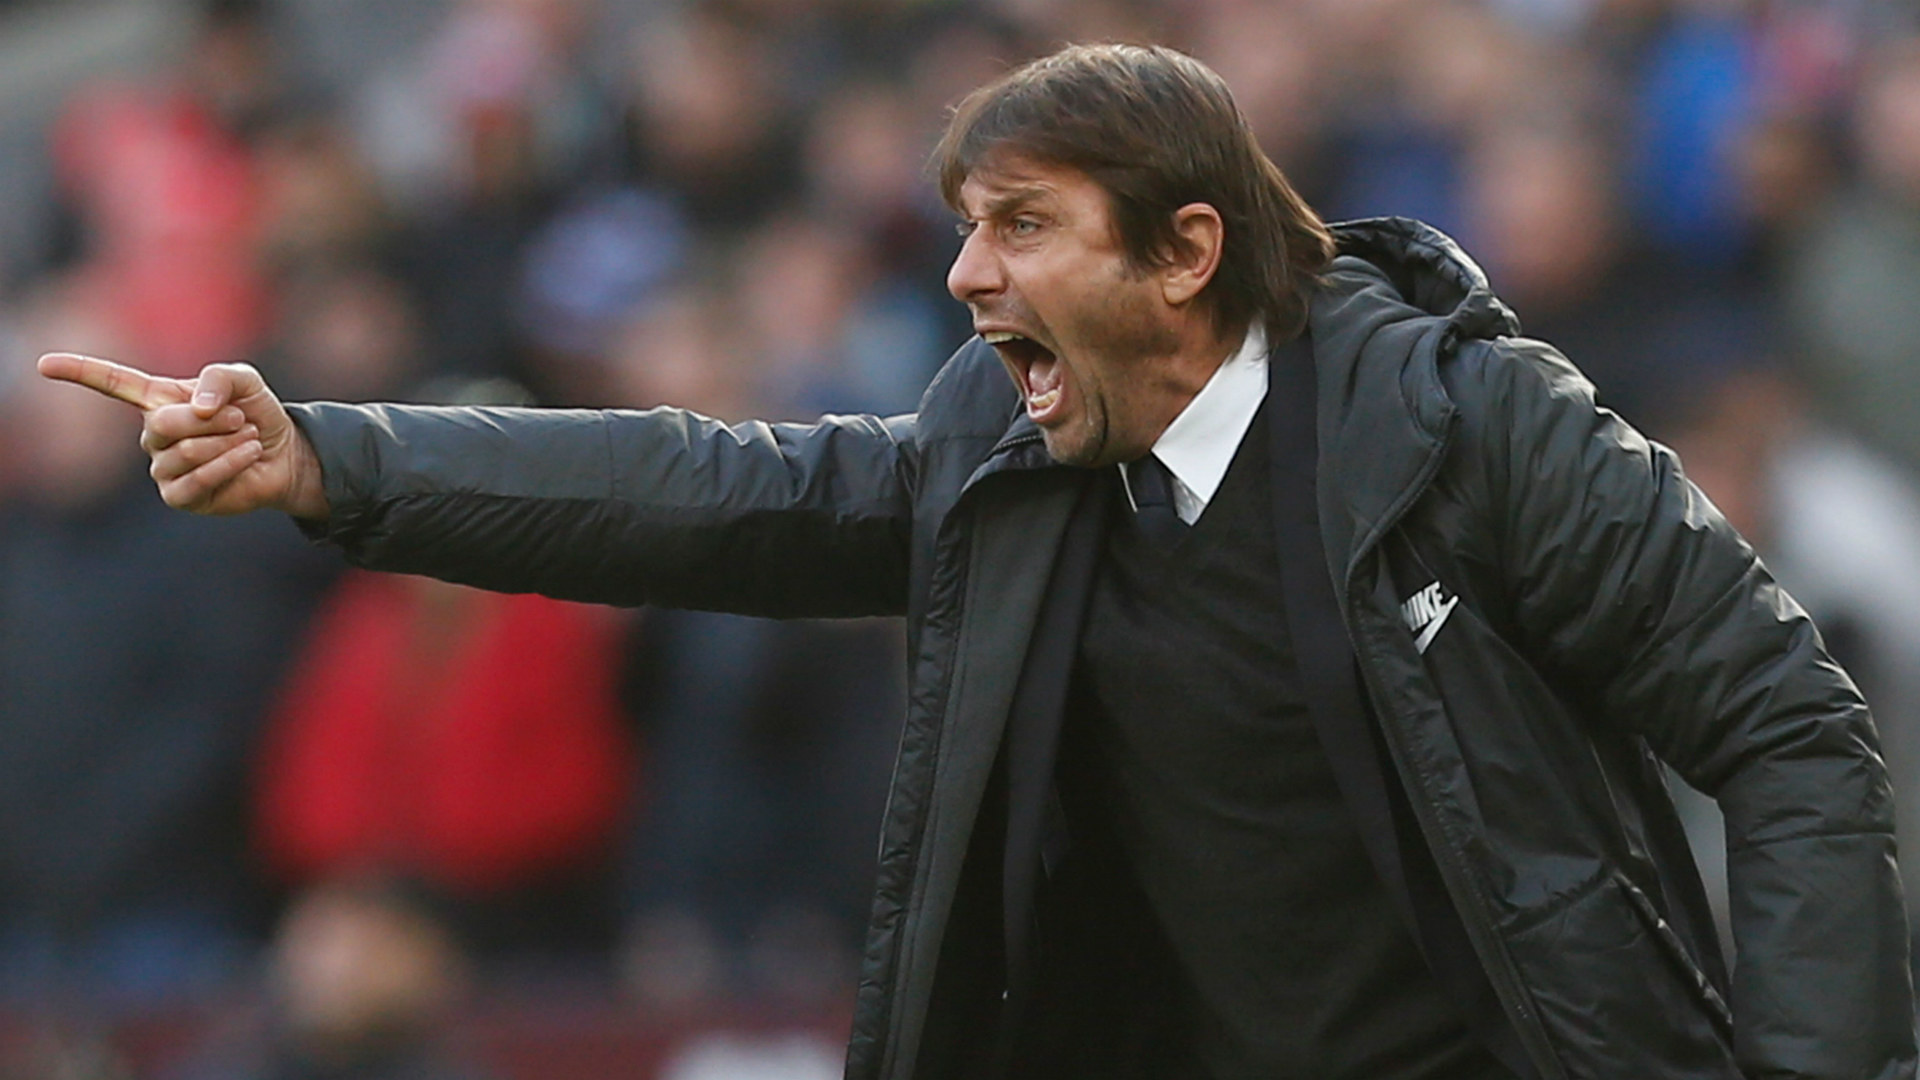 Capital pains: The stat that exposes Conte's London derby troubles